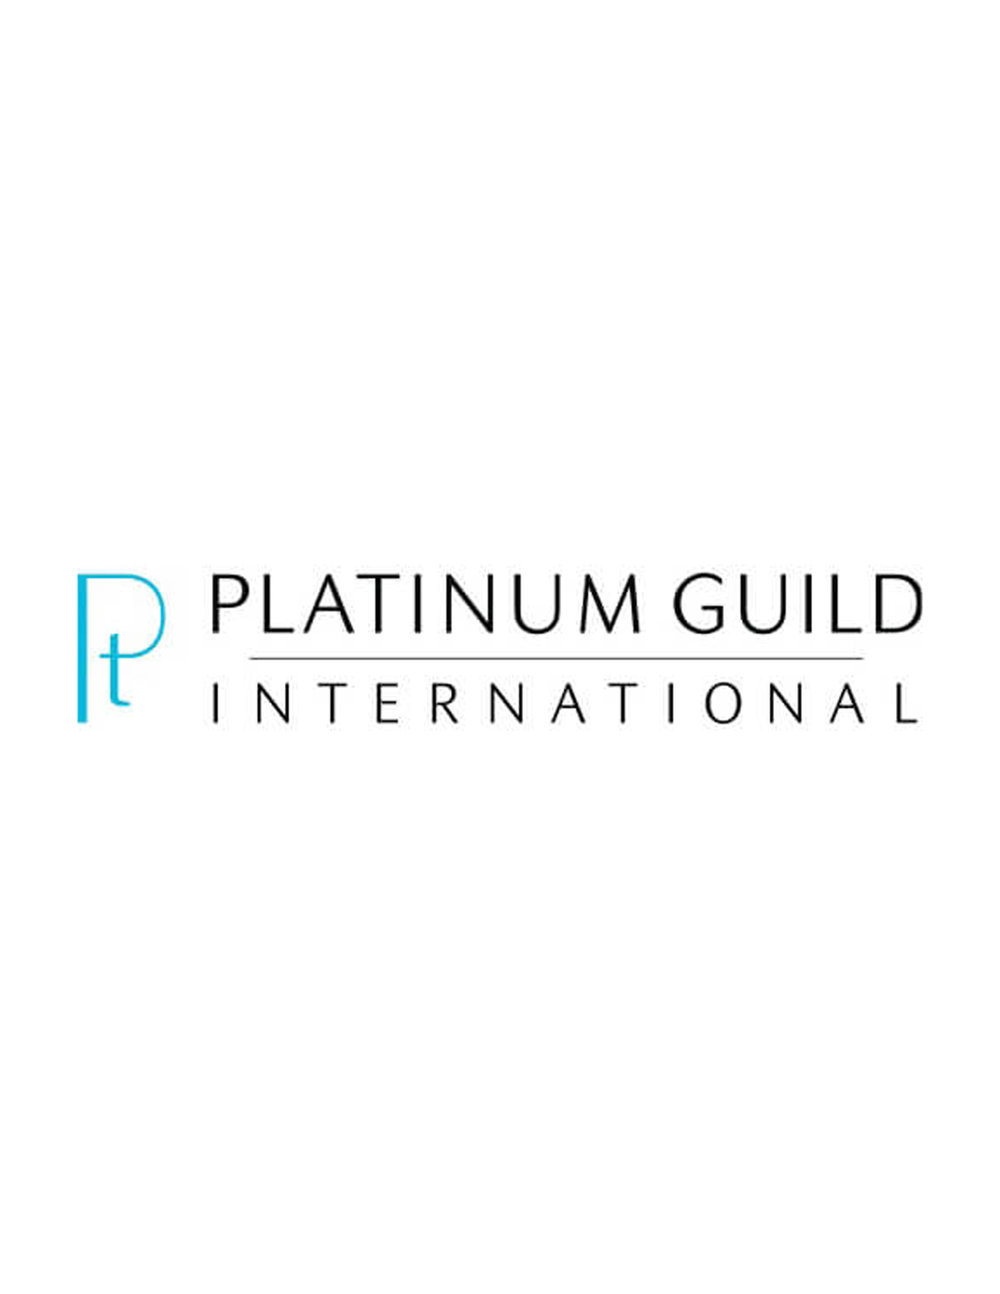 platinum-guild-international-logo-web.jpg